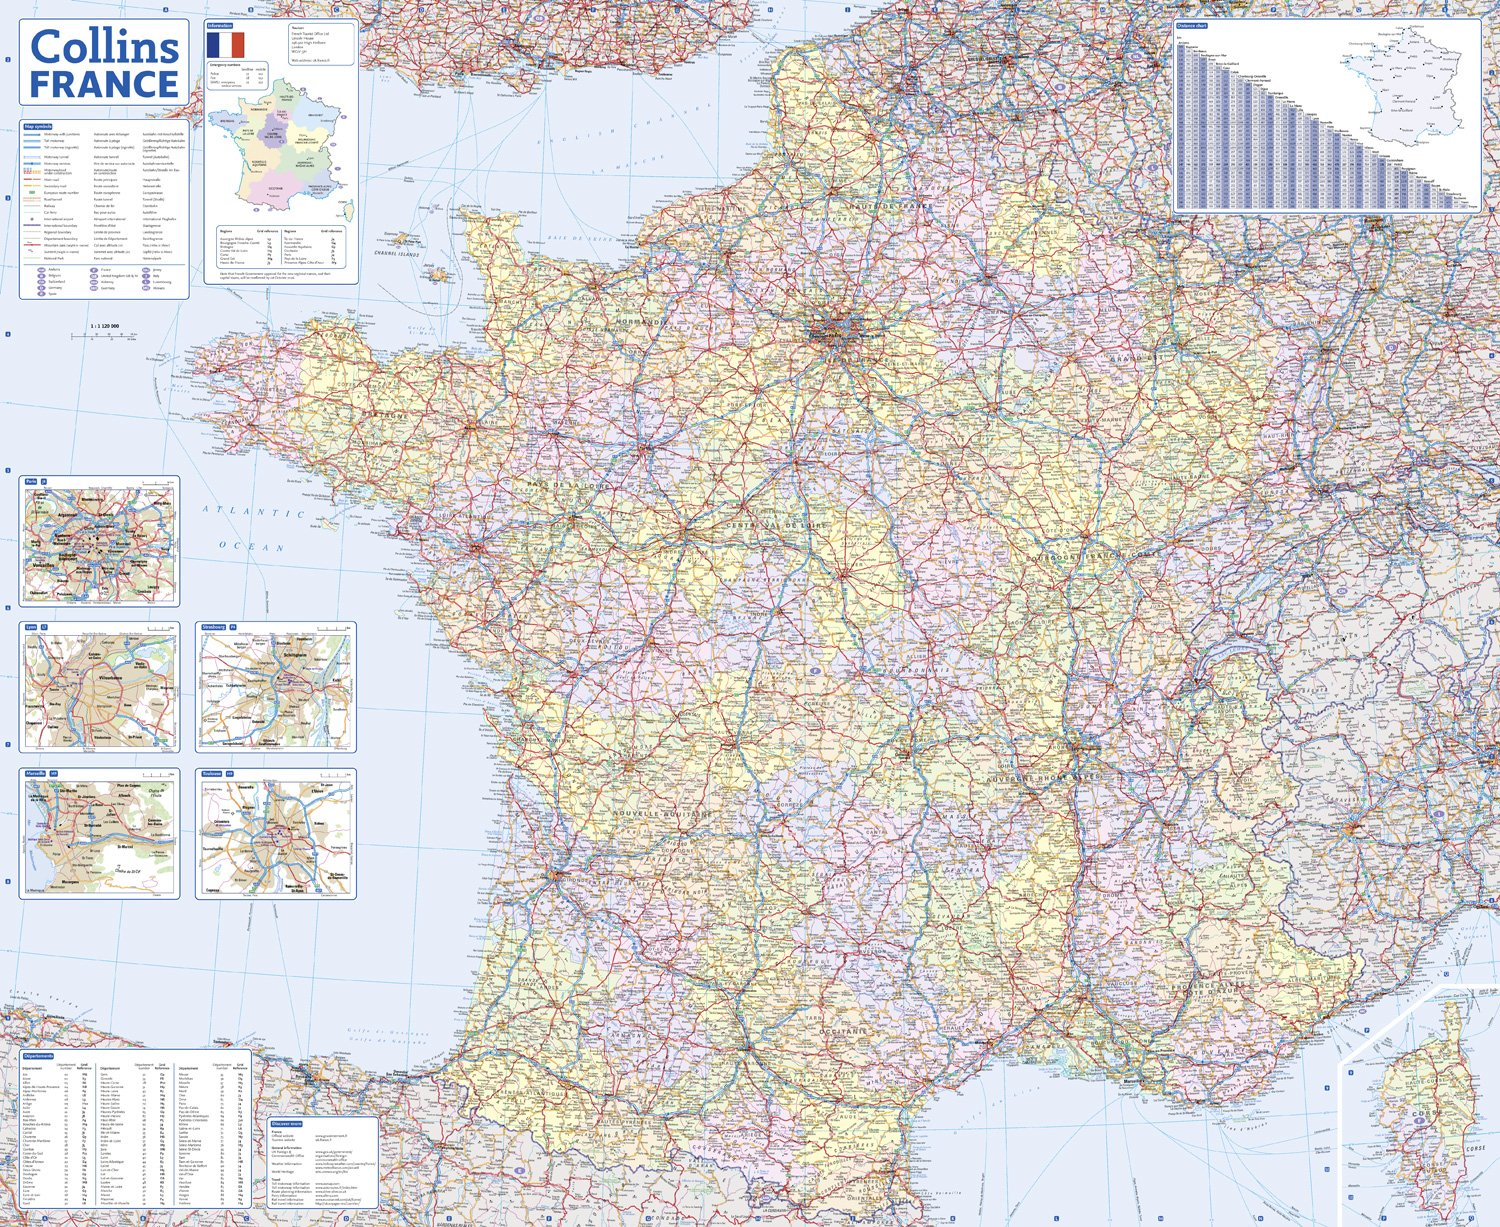 2017 Collins France Road Map: Collins UK: 9780008203603 ... on travel route of france, airports in the south of france, street maps of paris france, detailed map of europe france, detailed map venice italy, size of france, detailed map of paris france, detailed world map, towns in provence france, detailed map of southern alabama, detailed map of northern colorado, detailed map united kingdom, detailed map of normandy, large airports in france, detailed map of provence, road map spain to france, road map of provence france, detailed map of southern france, detailed map of uk, republic of france,